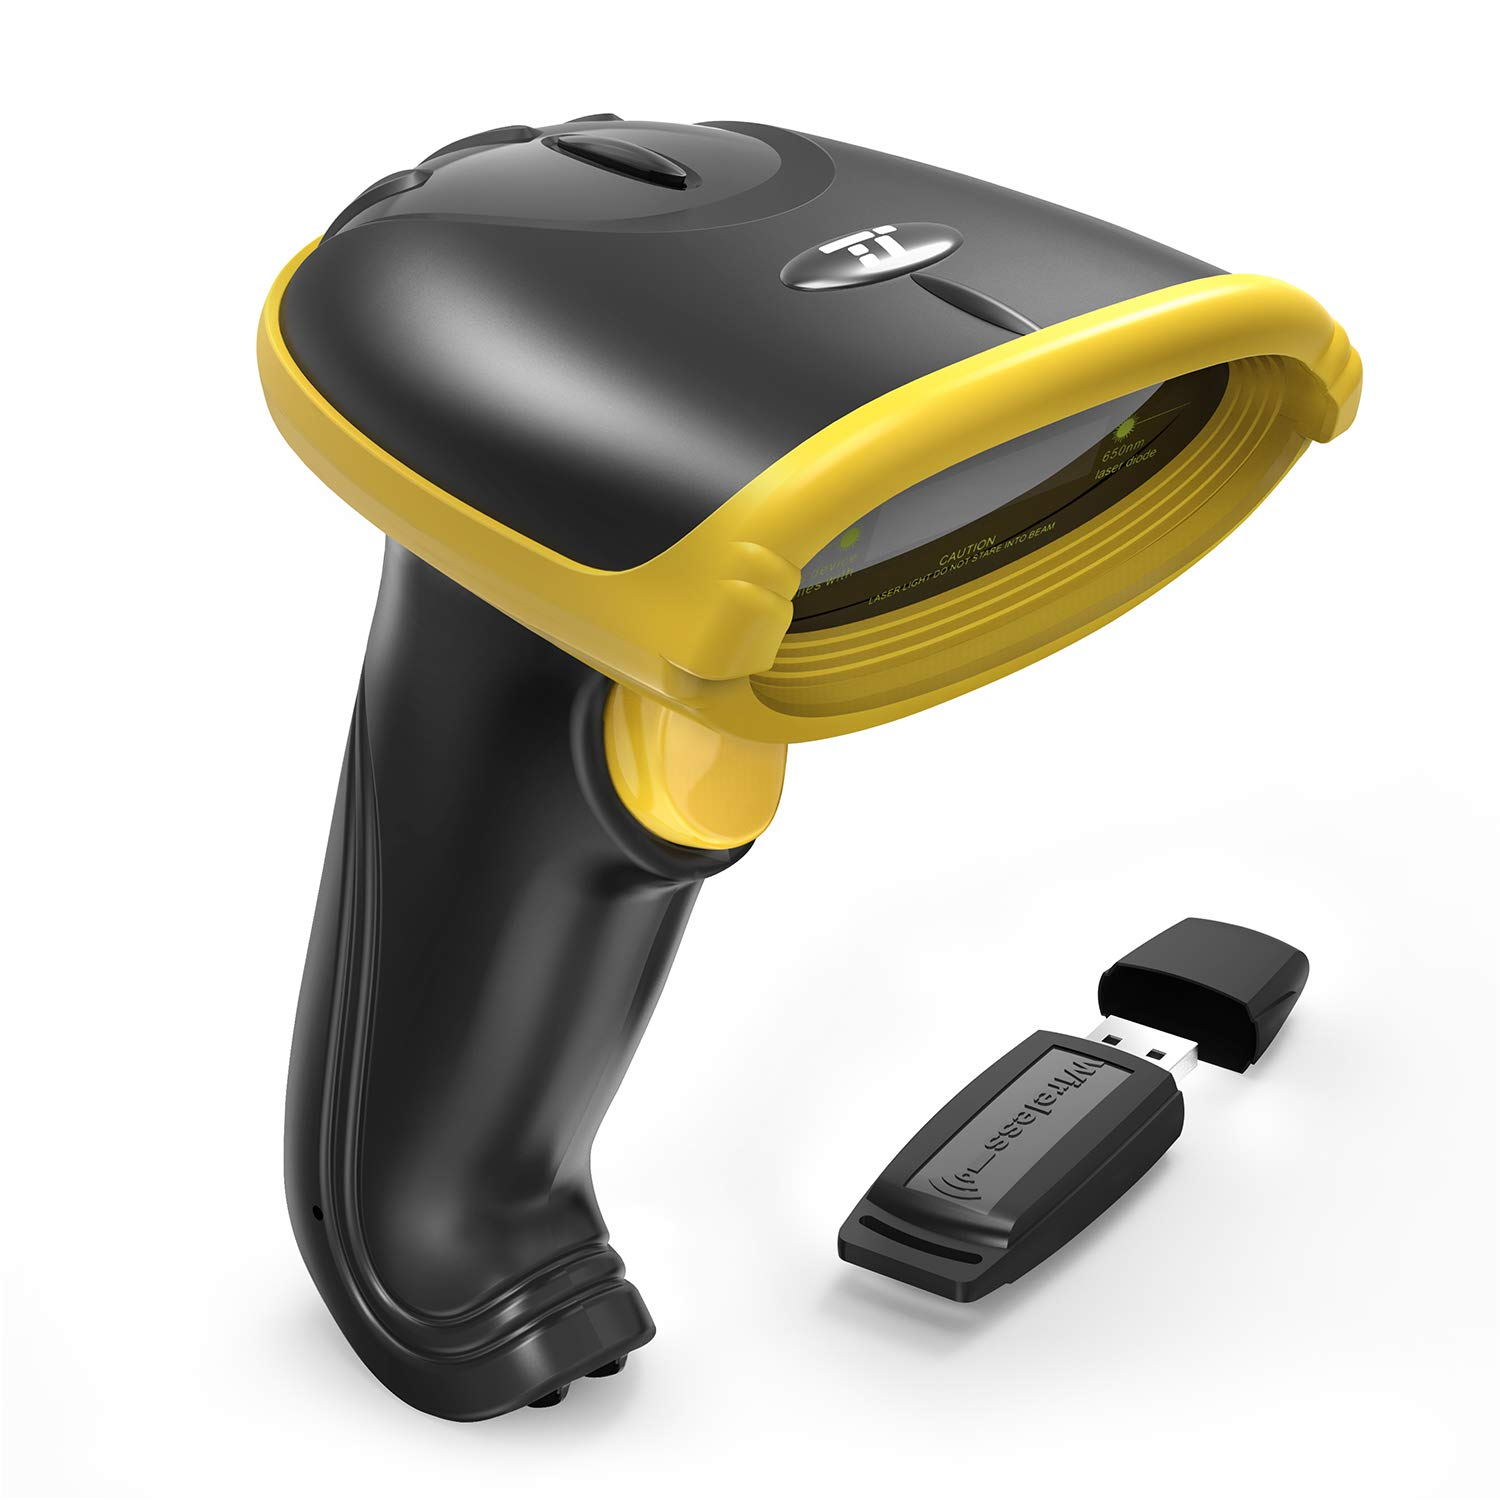 TaoTronics 2-in-1 2.4Ghz Wireless & Wired Barcode Scanner USB Bar Code Scanner with 32 Bit Processor, Portable Wireless Receiver, 700mAh Internal Battery